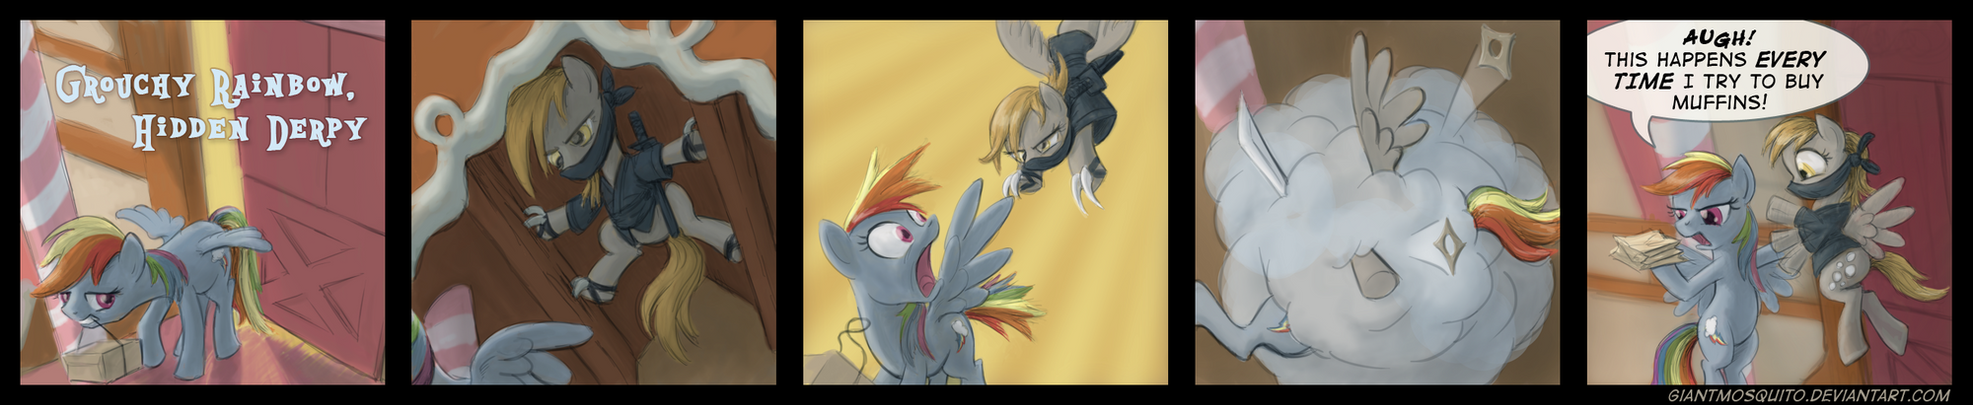 Grouchy Rainbow, Hidden Derpy by GiantMosquito